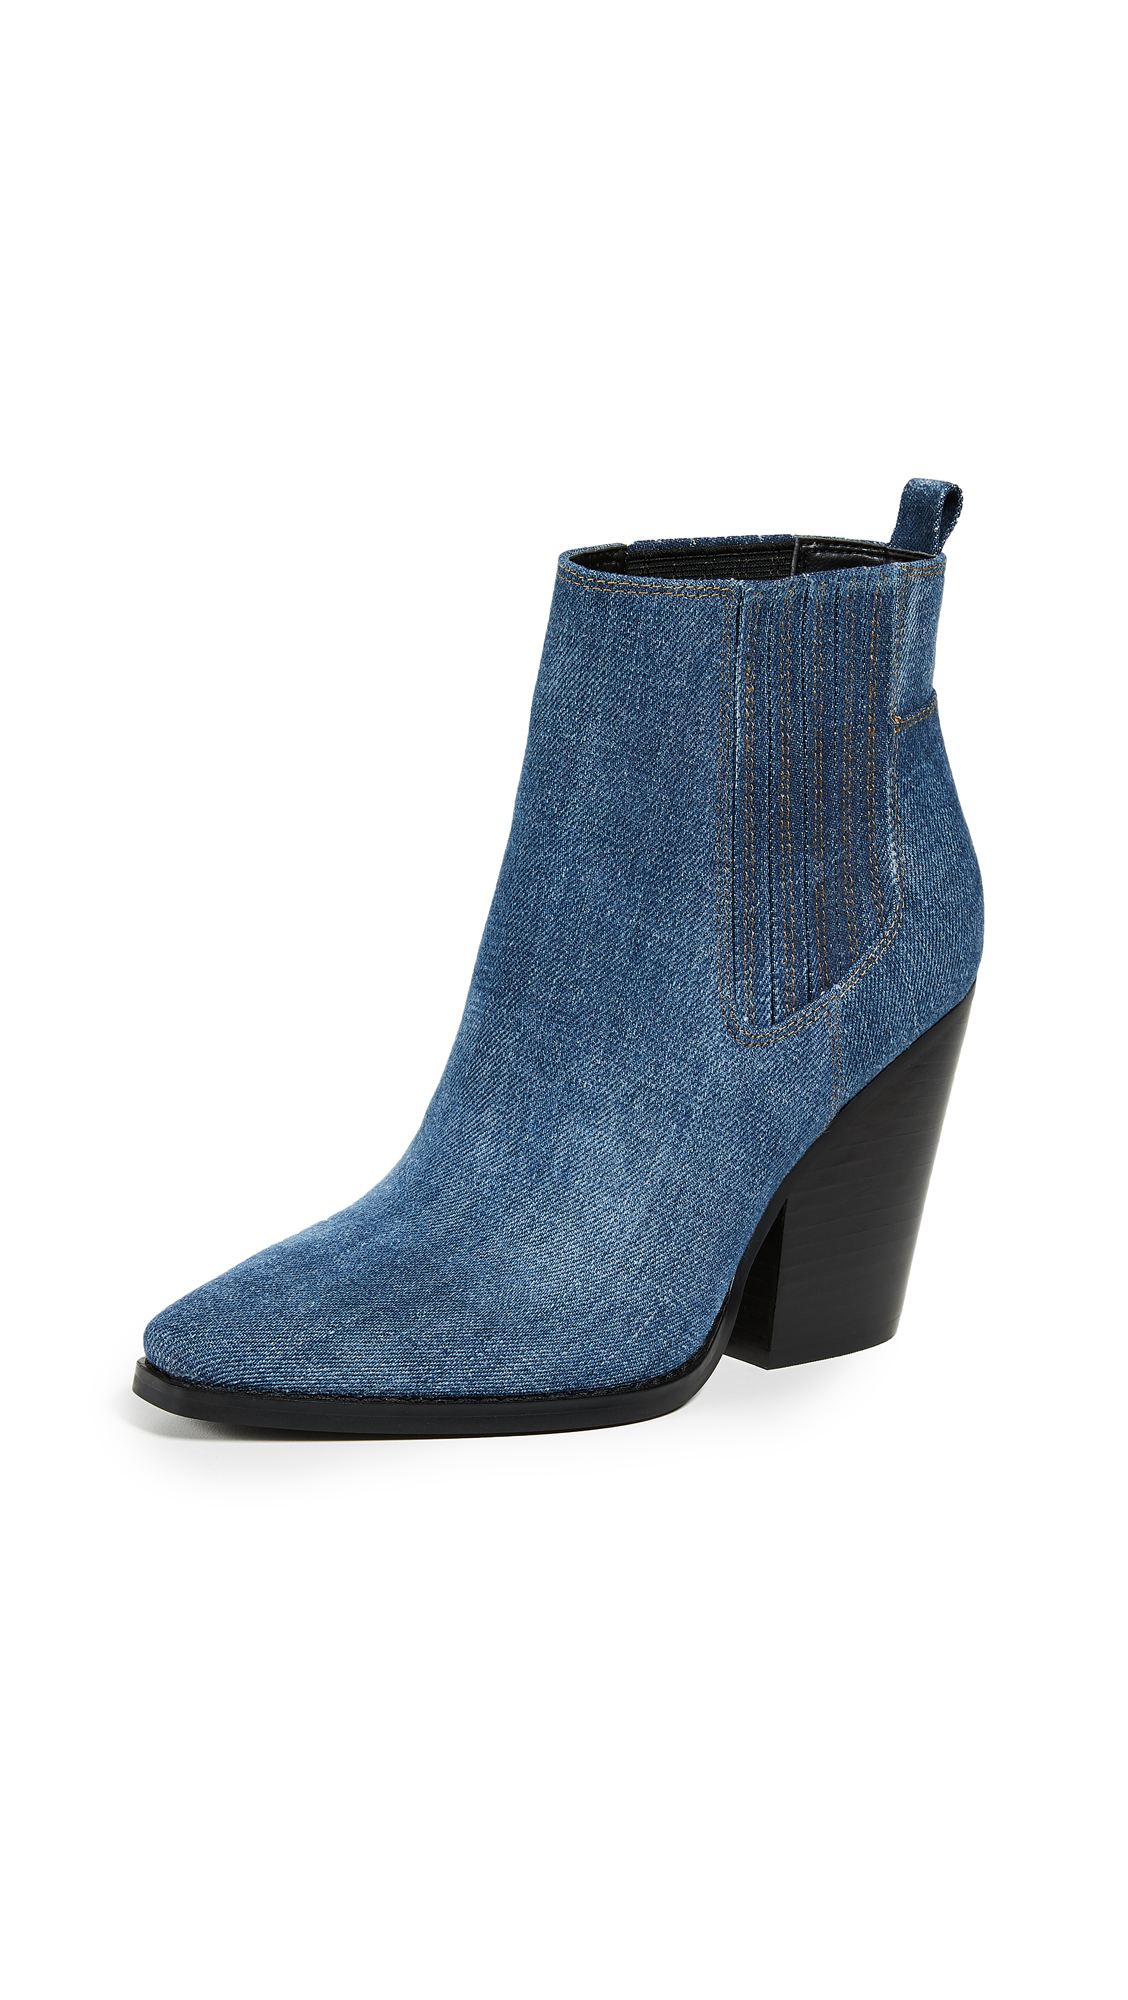 KENDALL + KYLIE Colt Western Booties In Denim